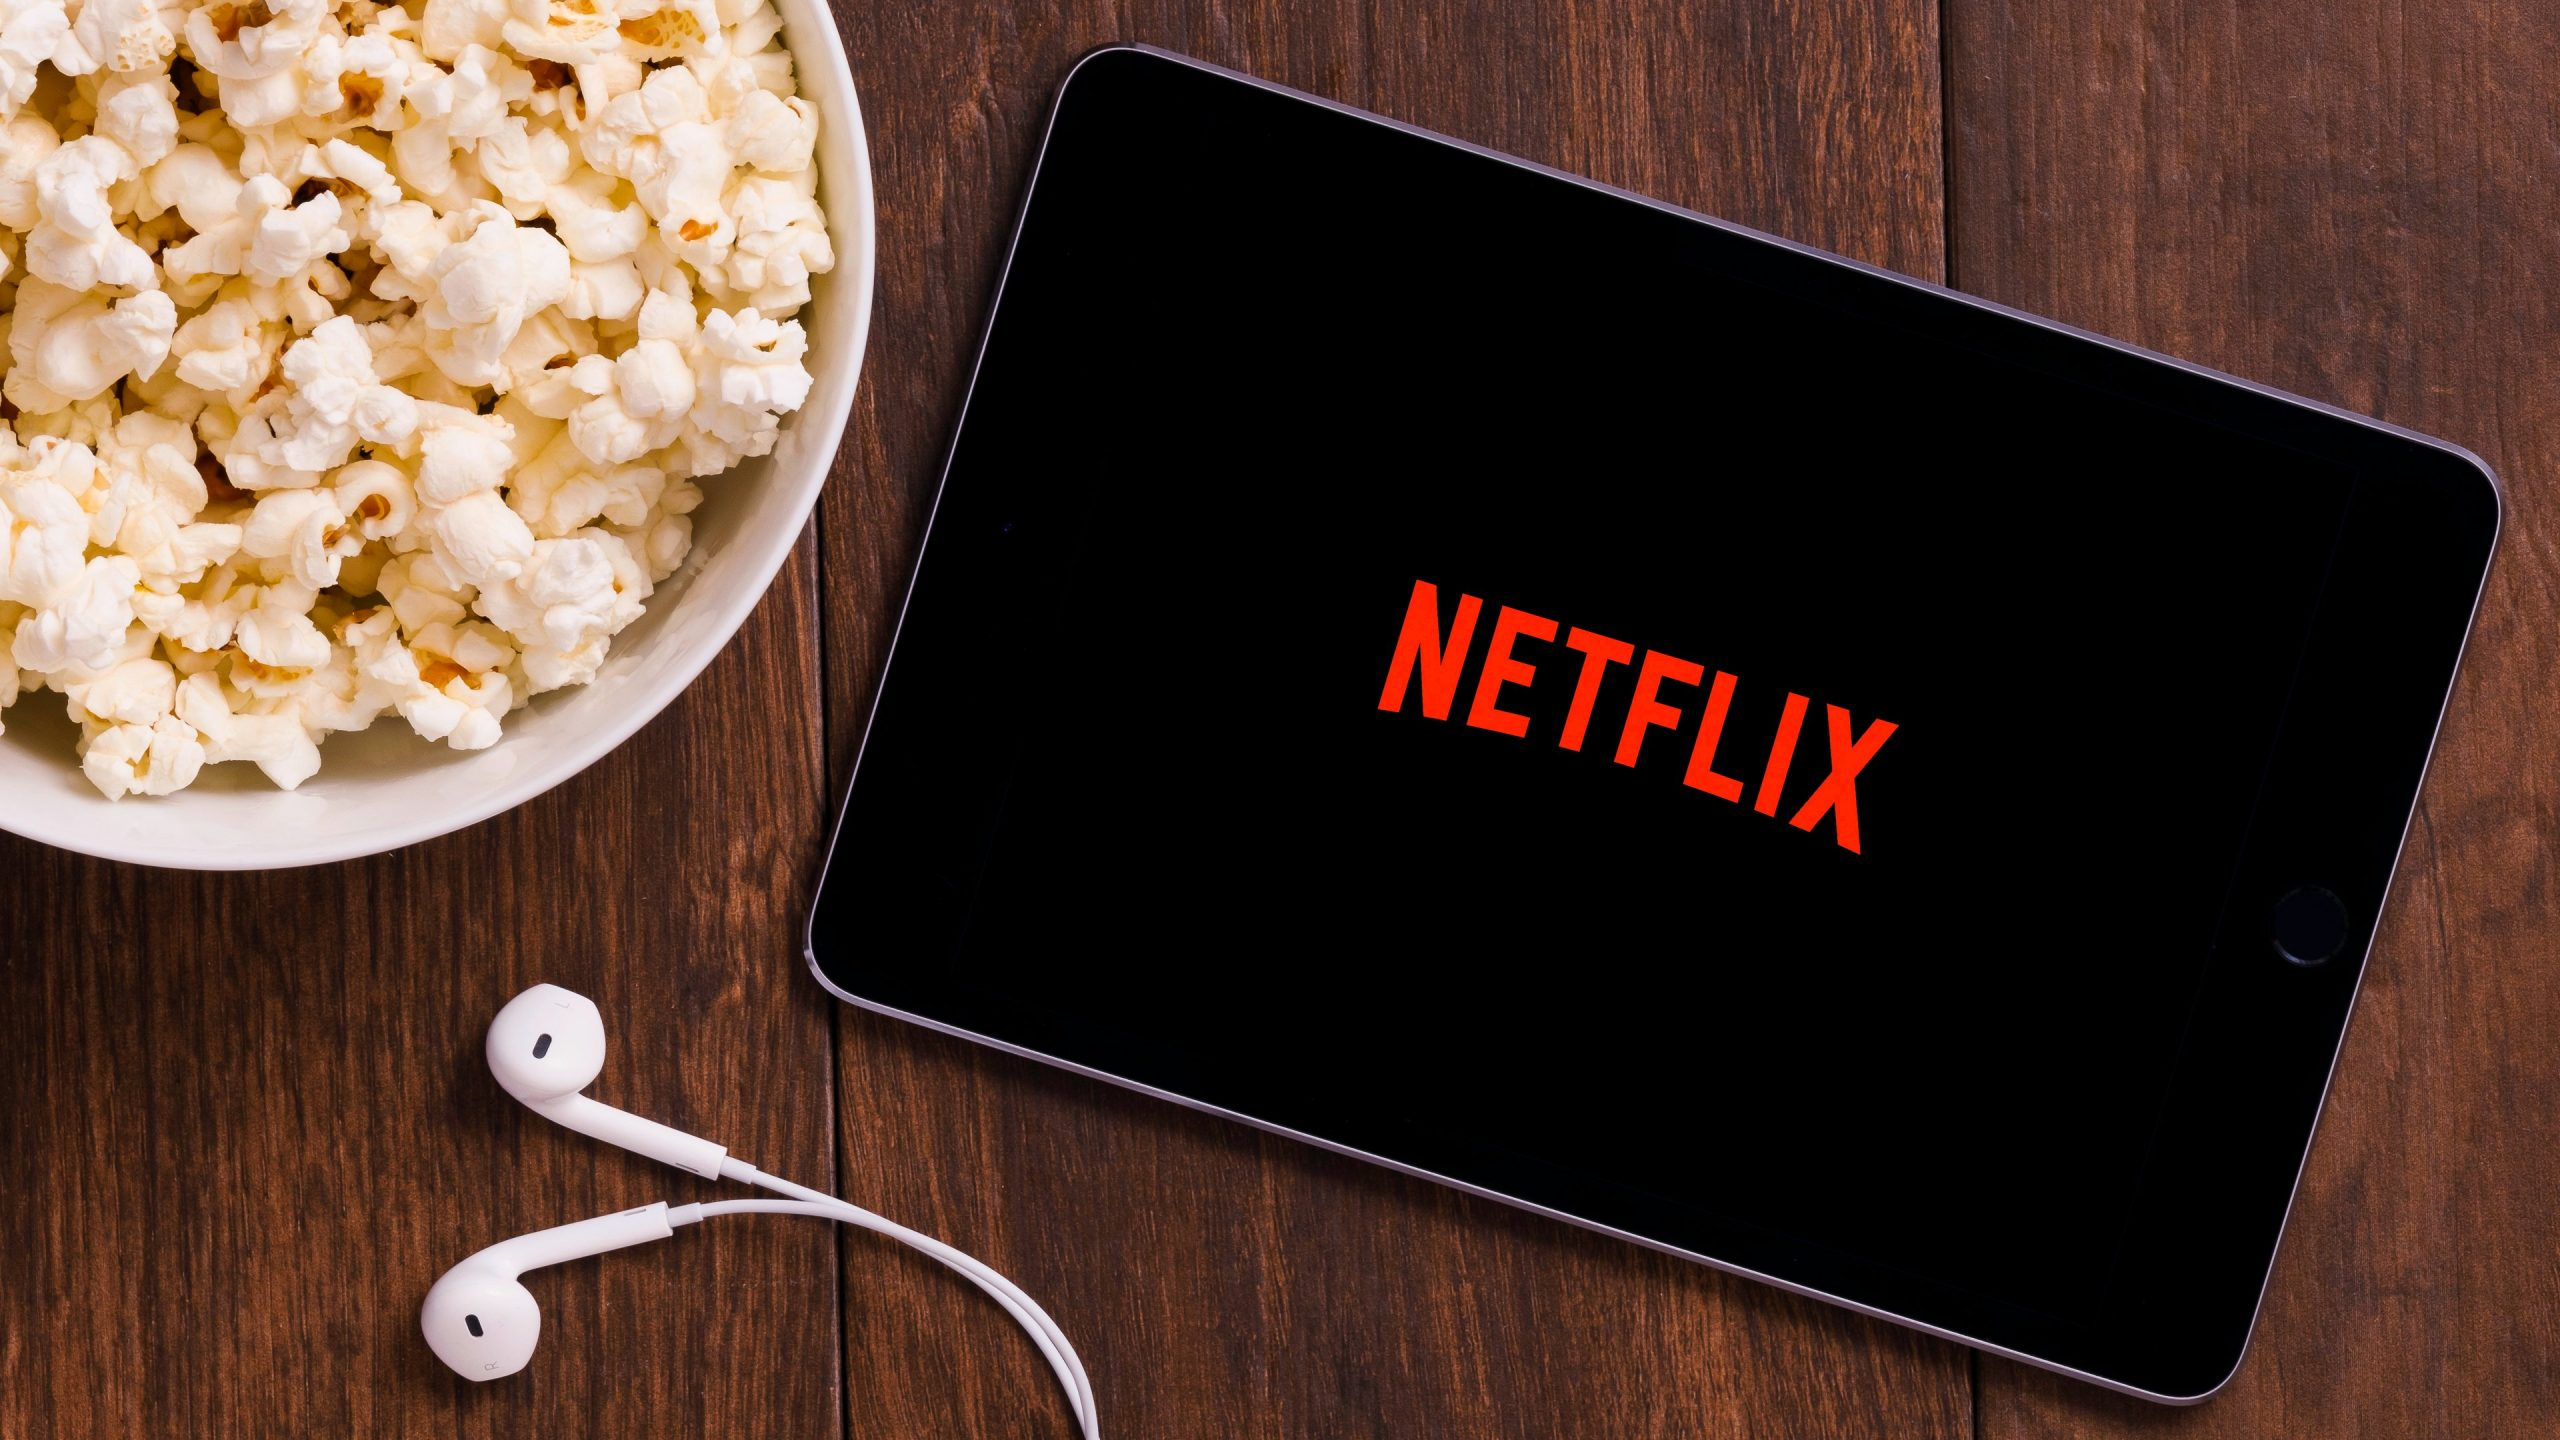 netflix on a tablet and popcorn